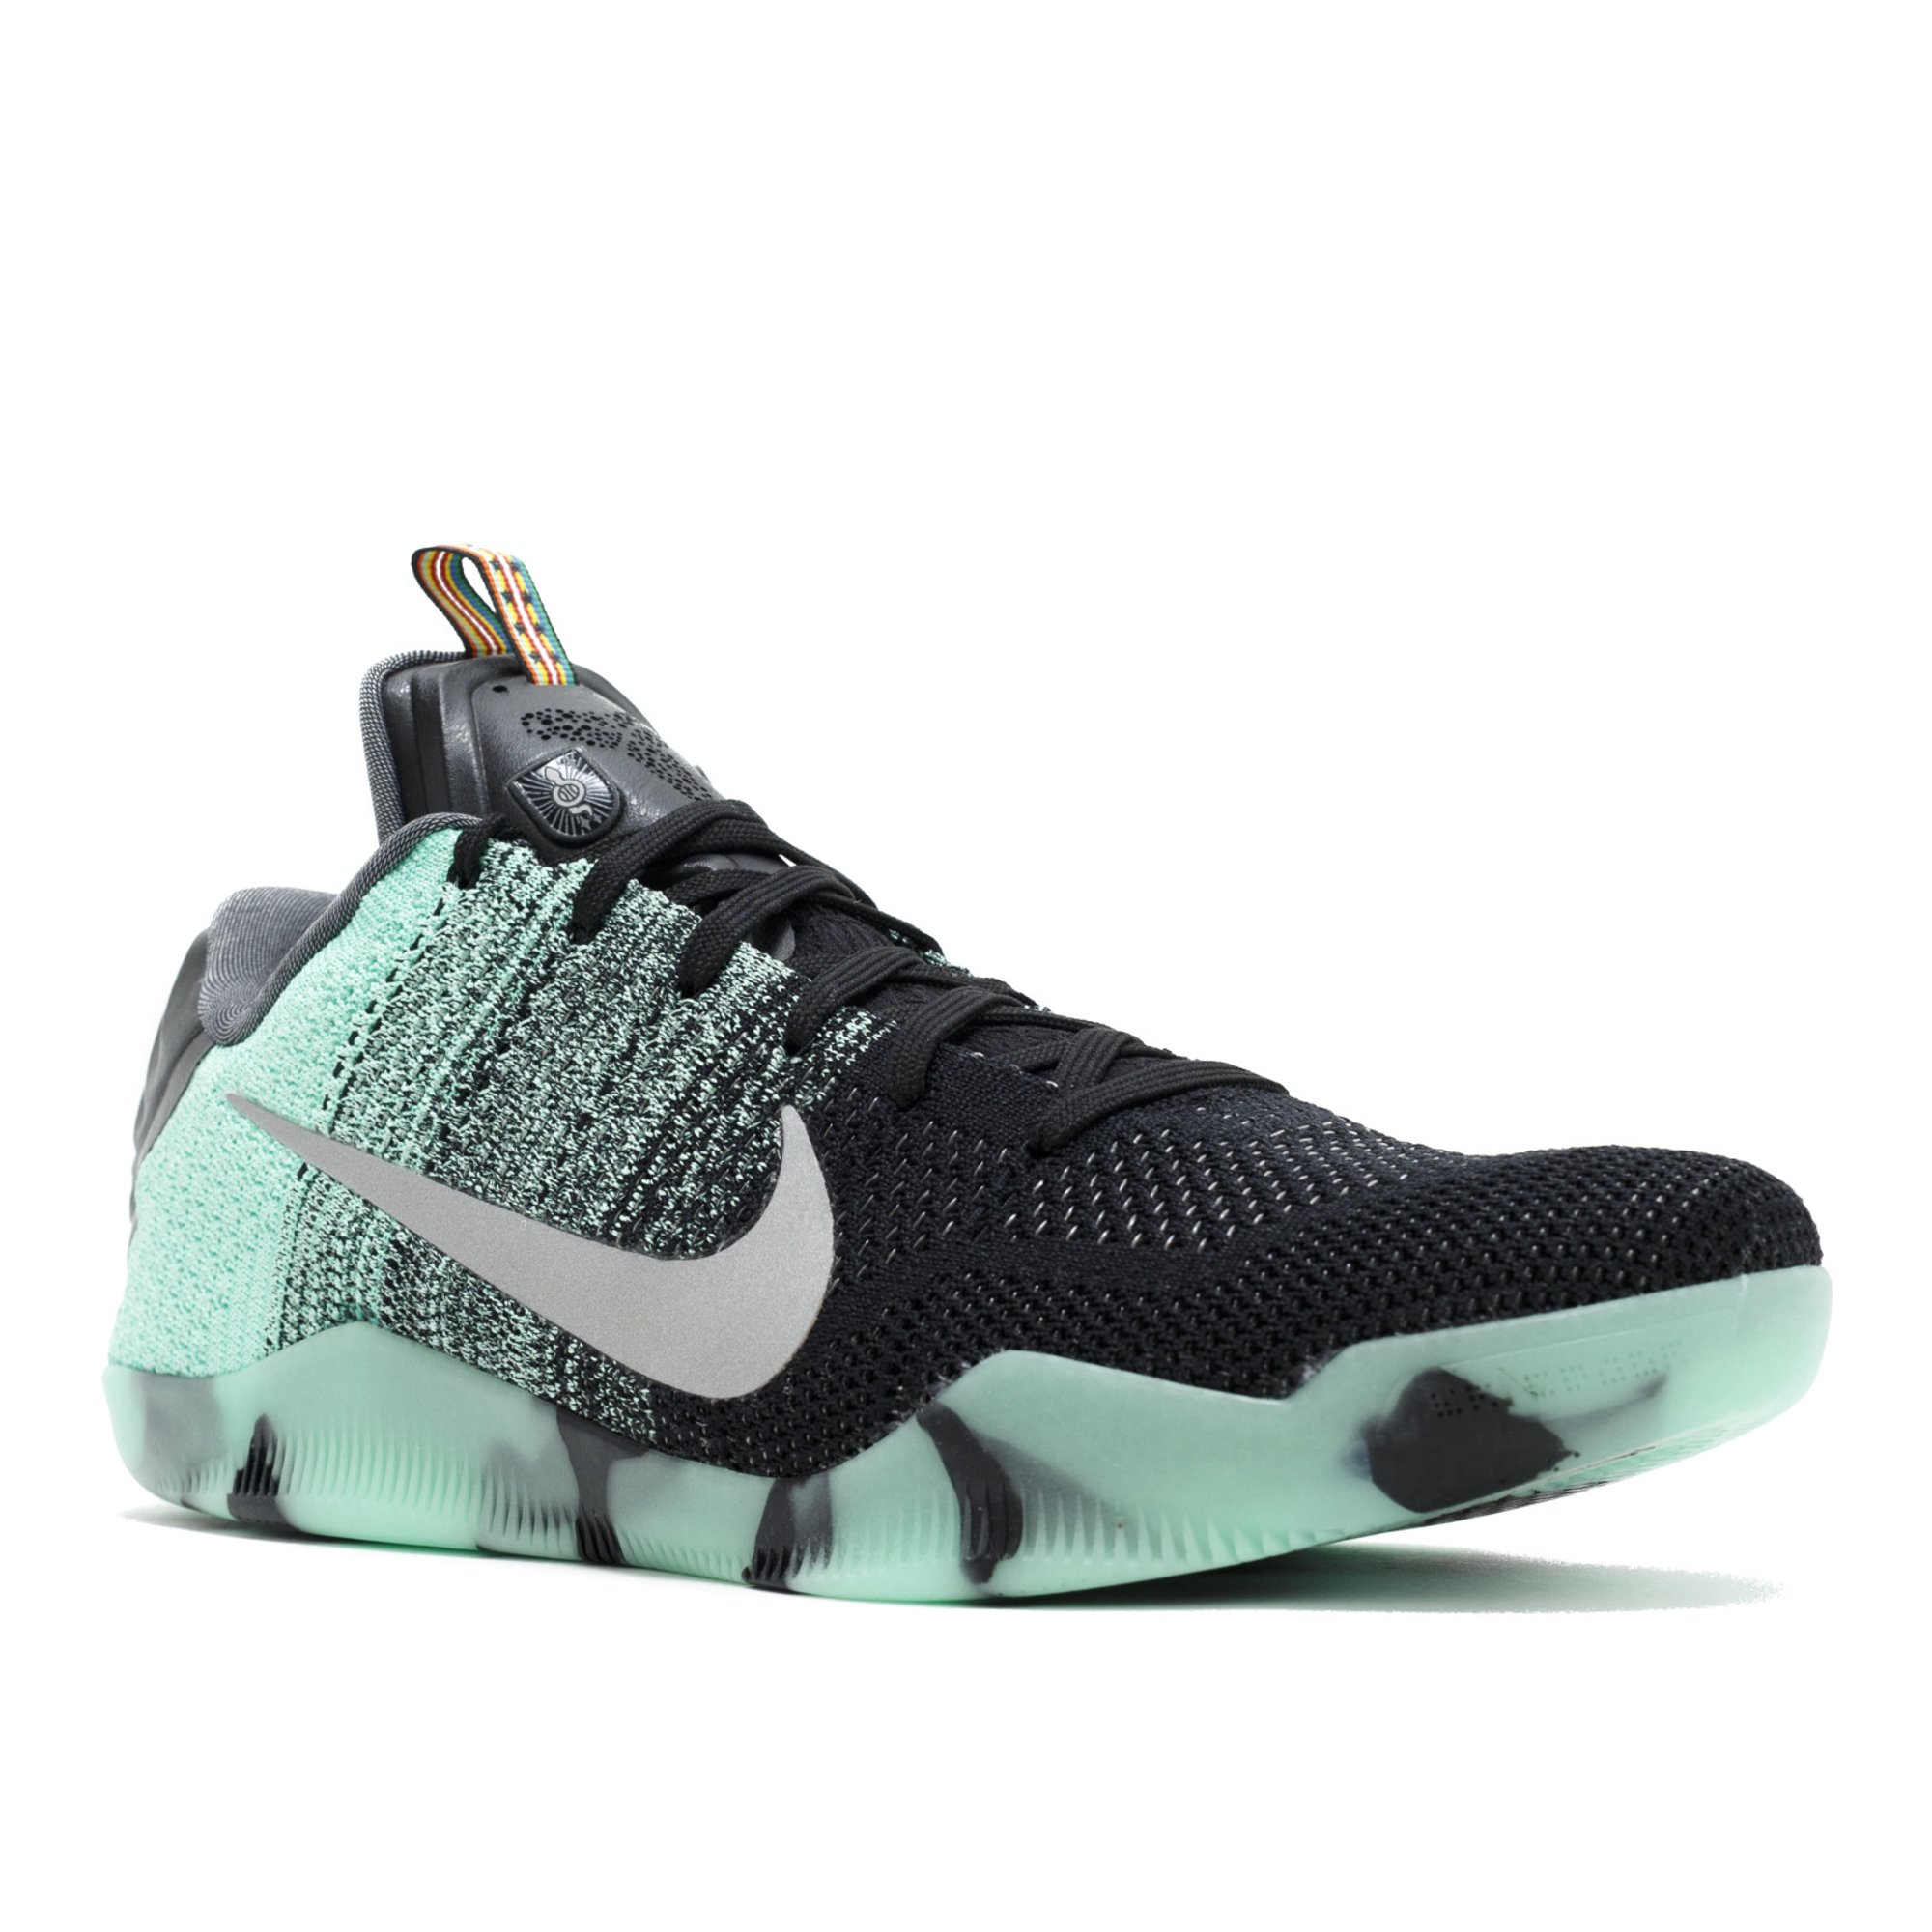 039469f5da1a Nike - Men - Kobe 11 Elite Low As  Green Glow  - 822521-305 - Size ...